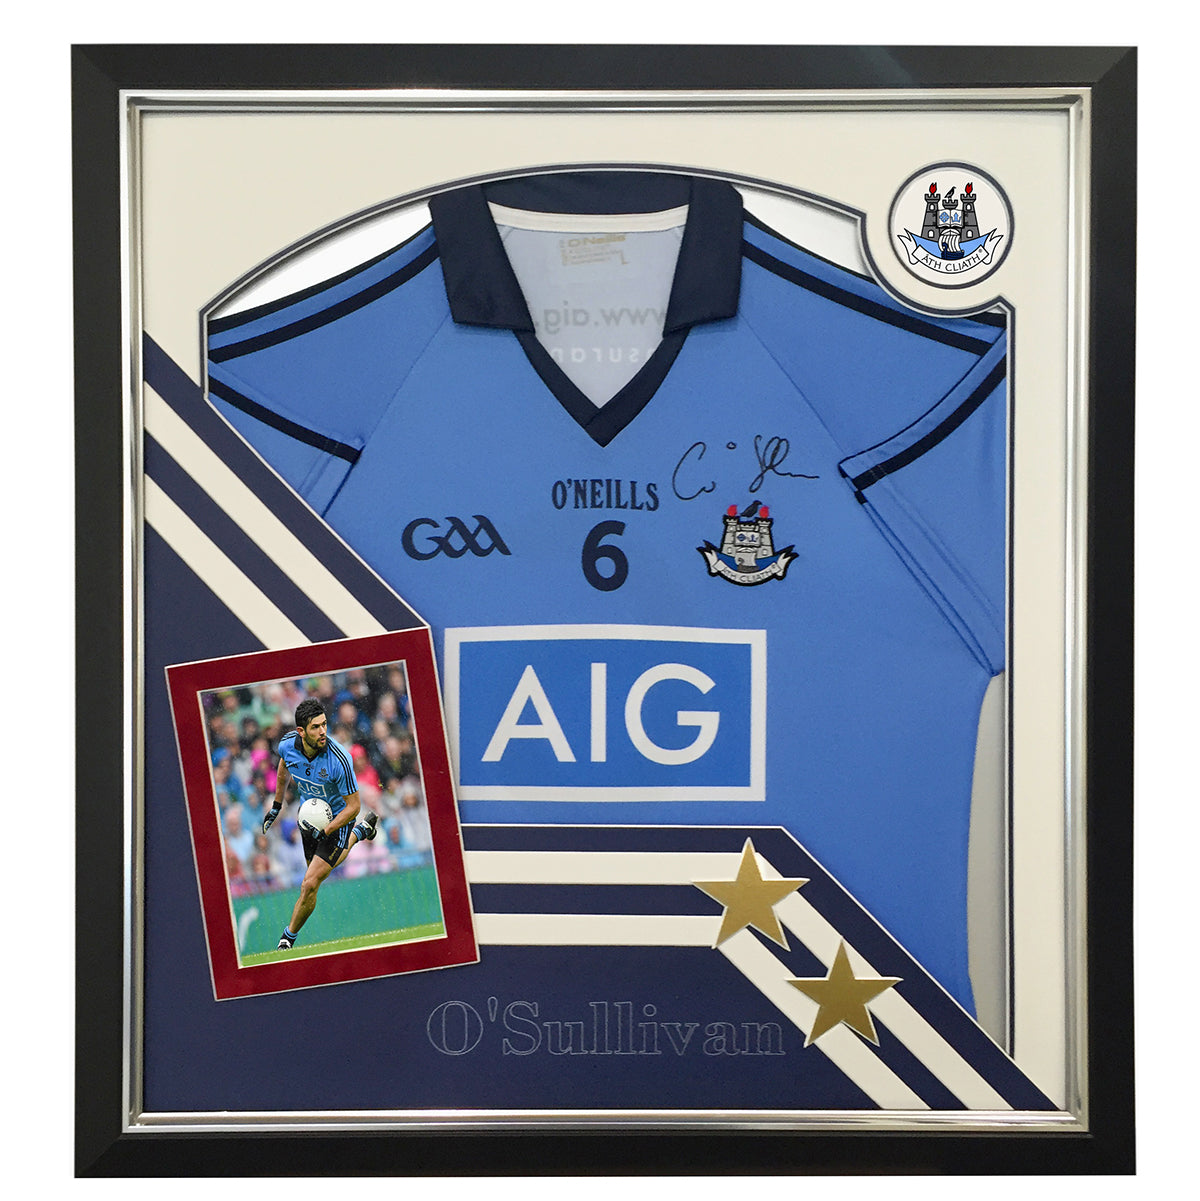 Dublin All Star Cian O Sullivan - with photo and bespoke mount desig